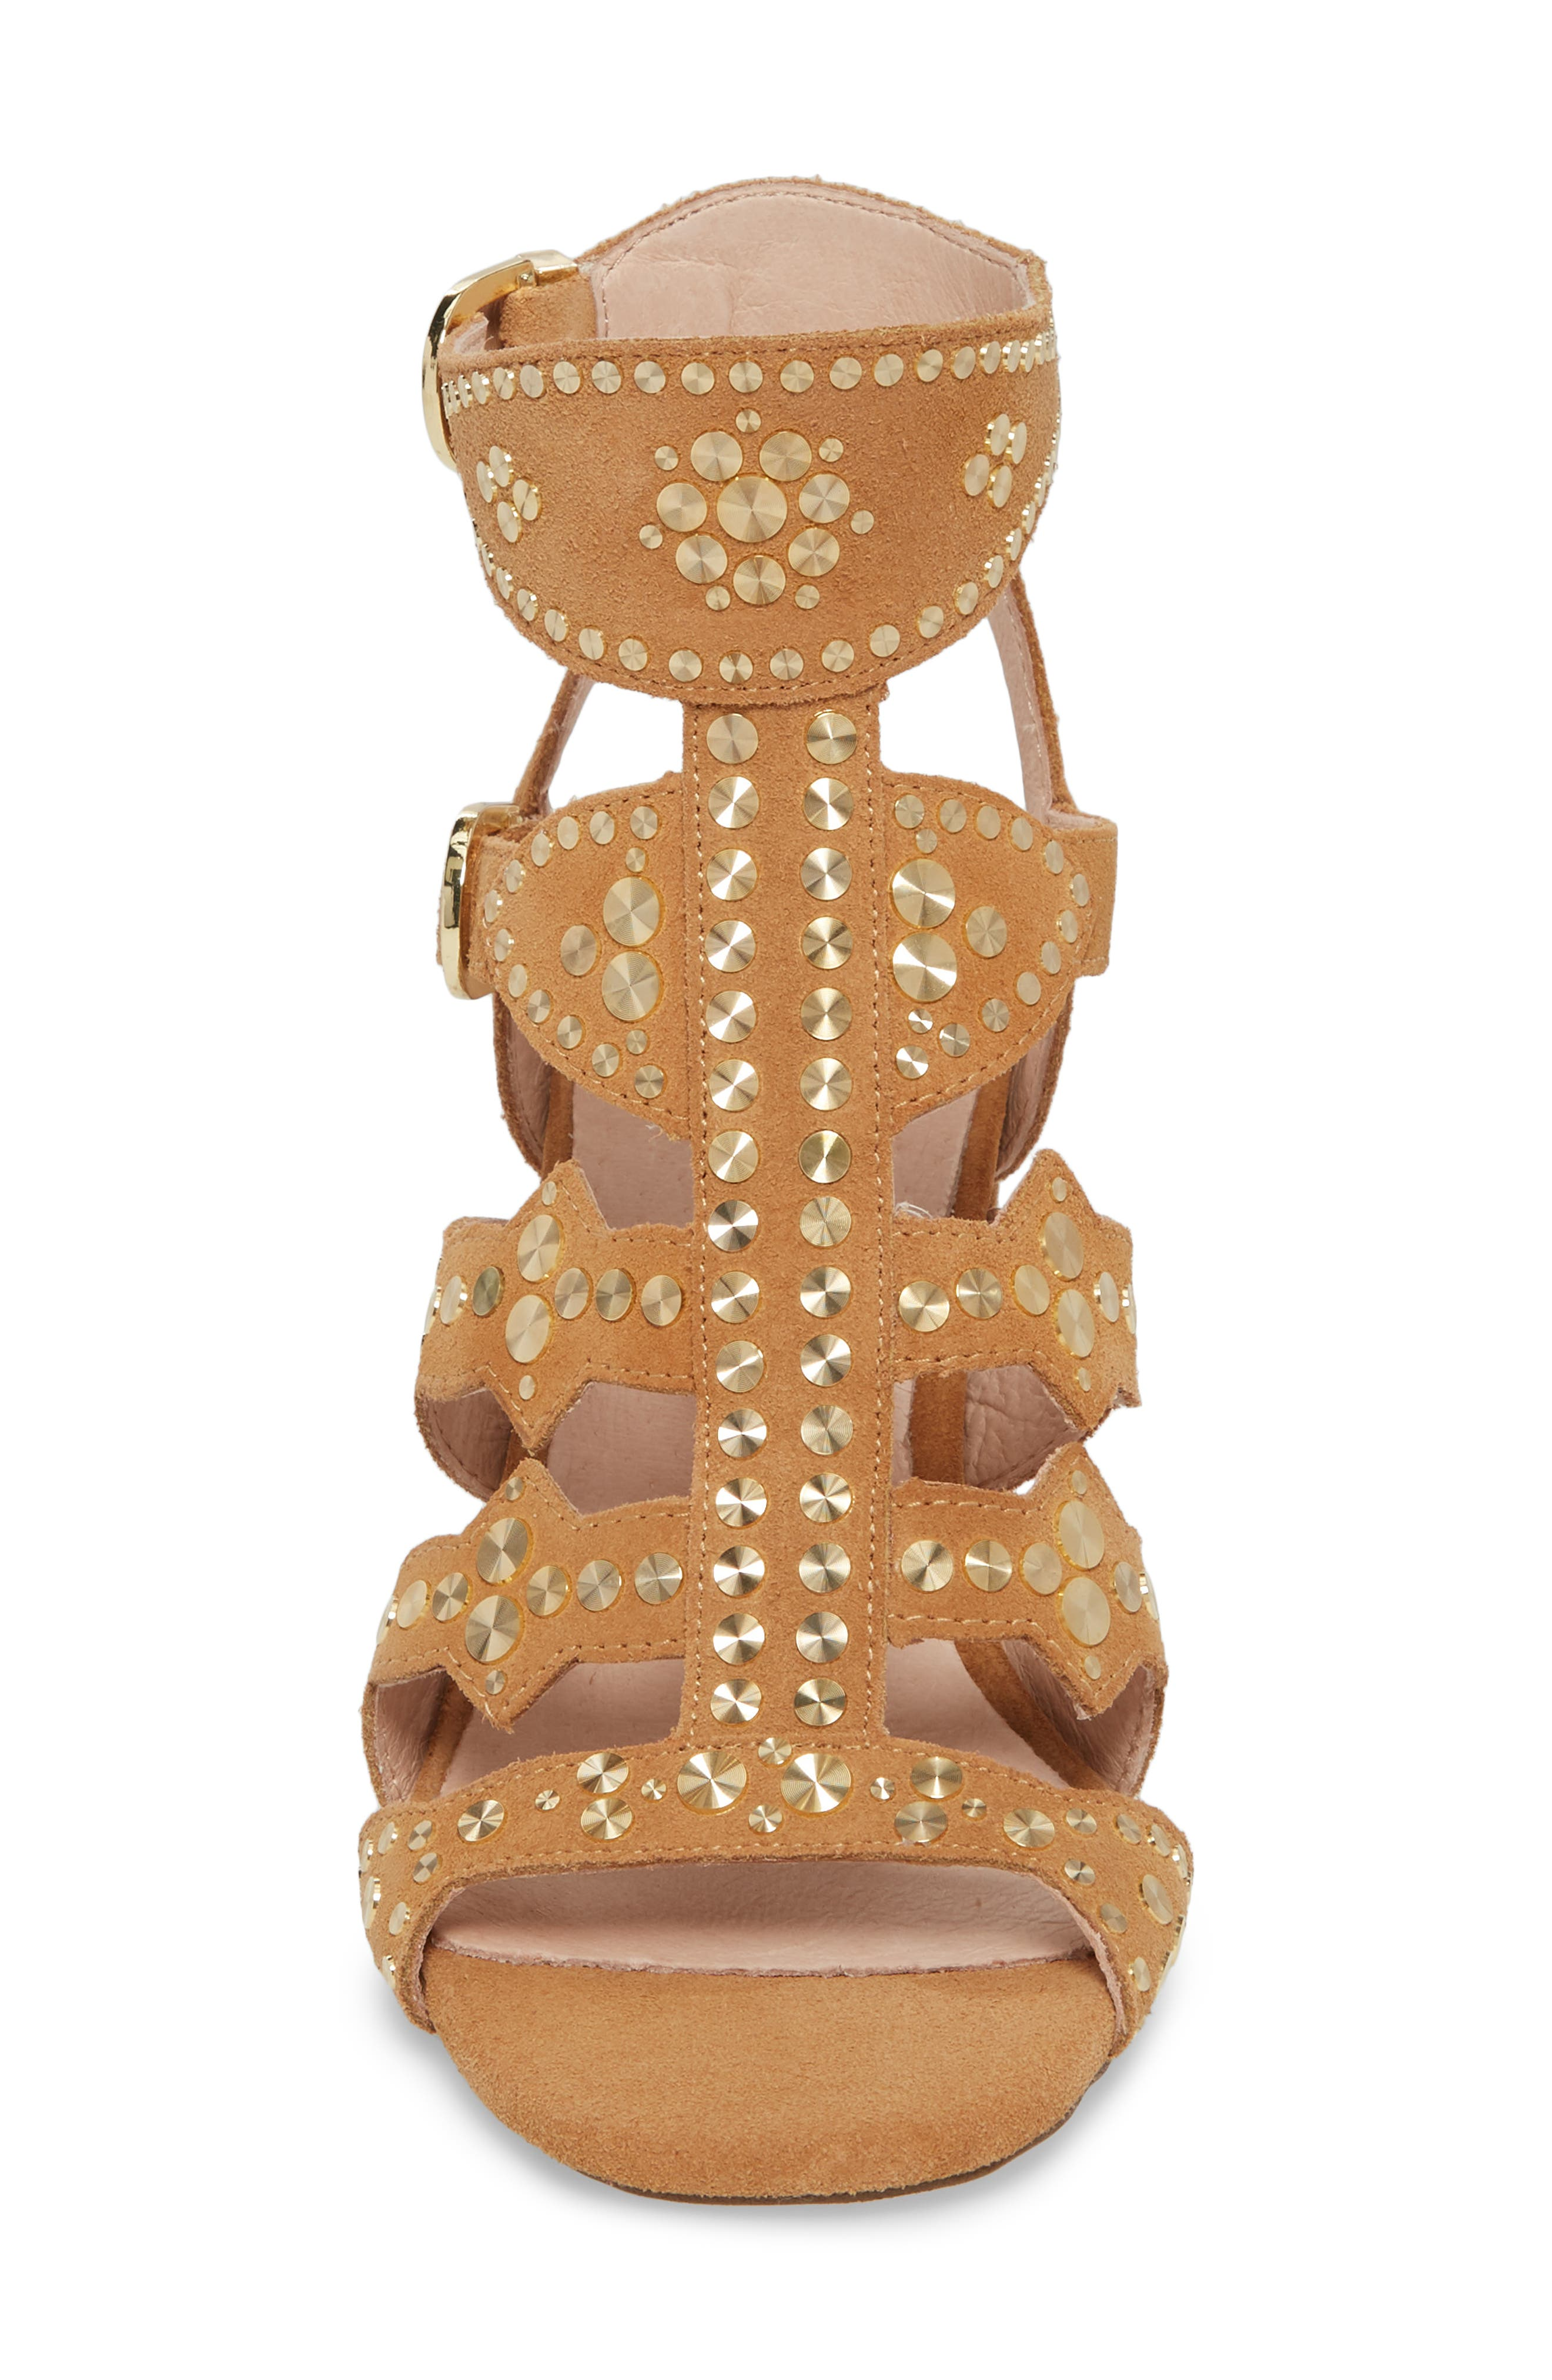 CECELIA NEW YORK,                             Cosmo Studded Sandal,                             Alternate thumbnail 4, color,                             200